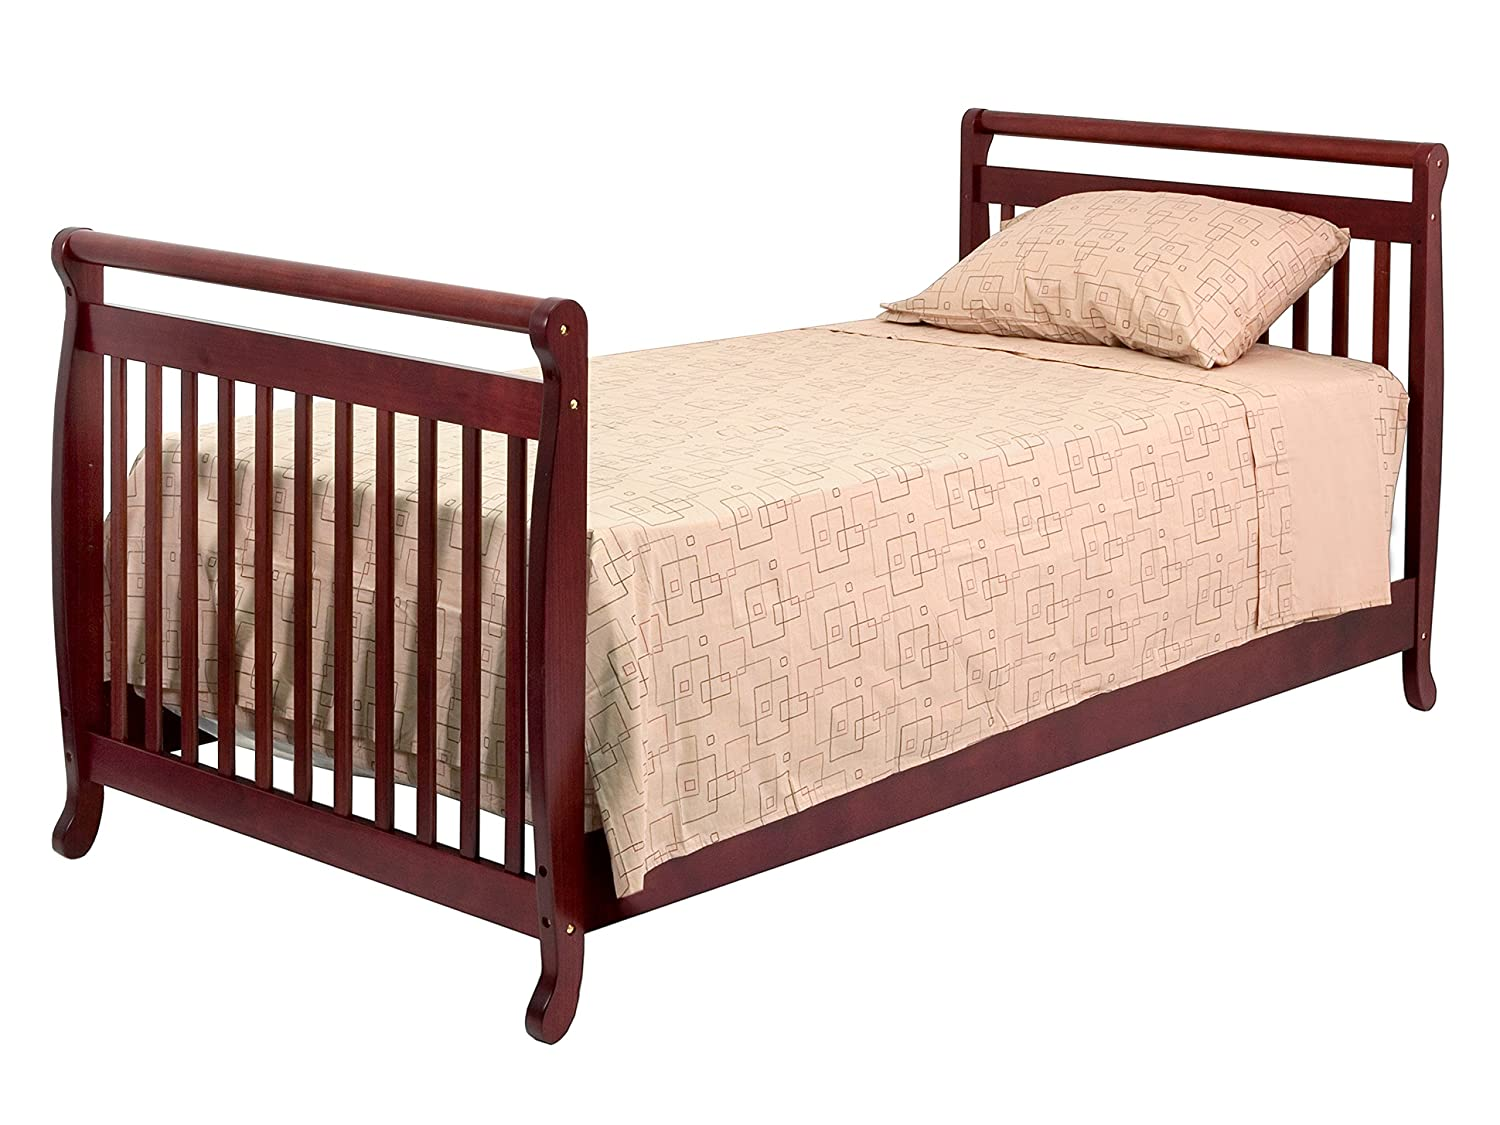 Amazoncom DaVinci TwinFull Size Bed Conversion Kit Cherry